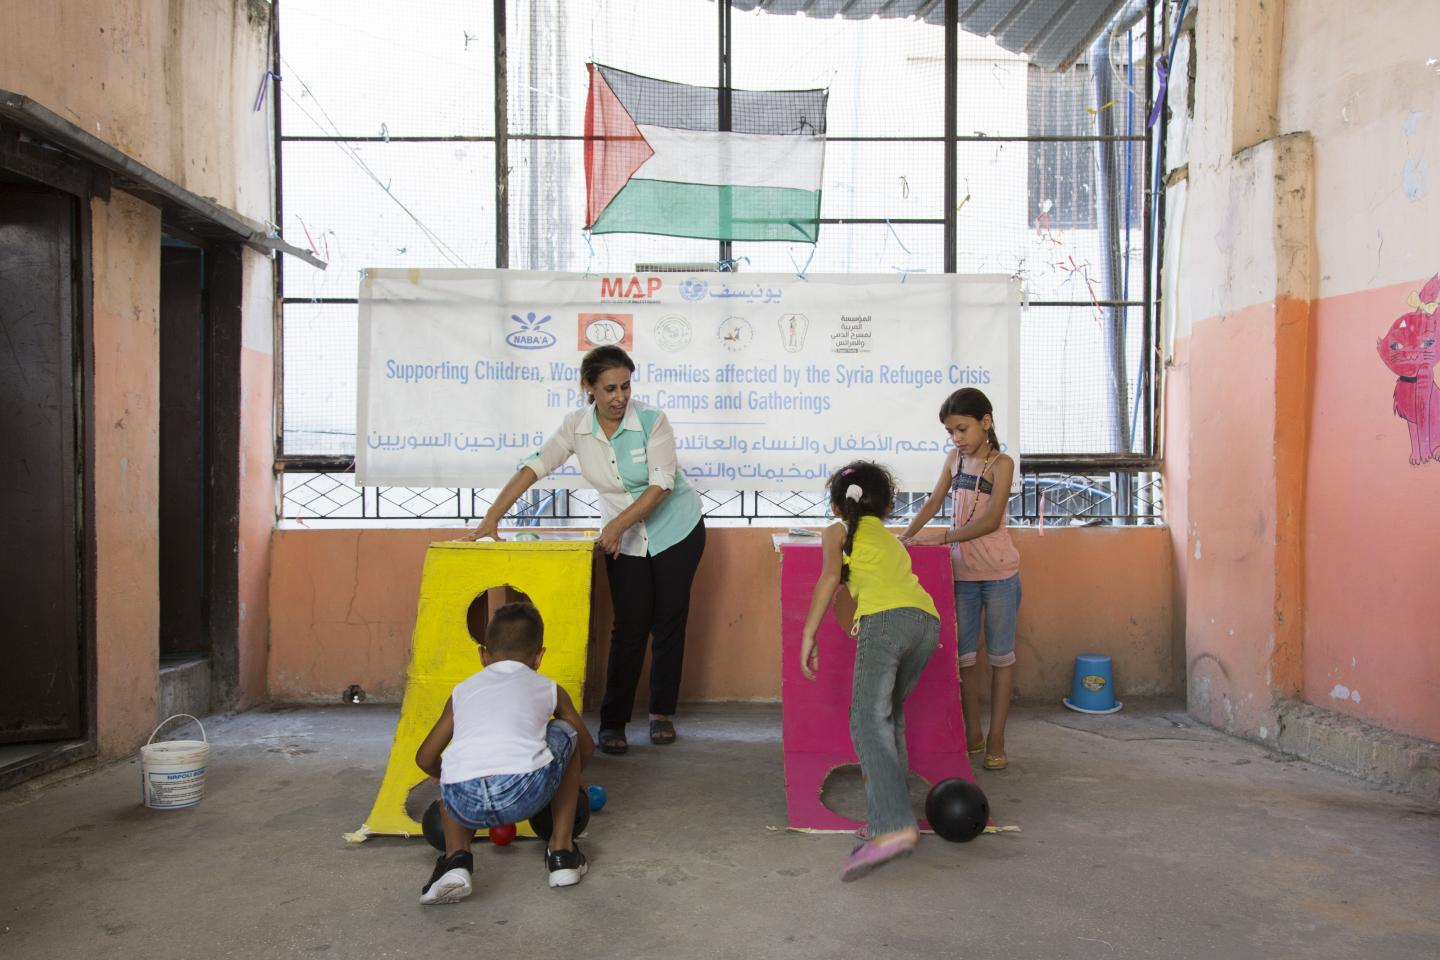 Palestinian refugee children throw the balls into holes during a basketball activity at the Tadamon center at the Ein el Helweh Palestinian refugee camp, in Saida, south of Lebanon.